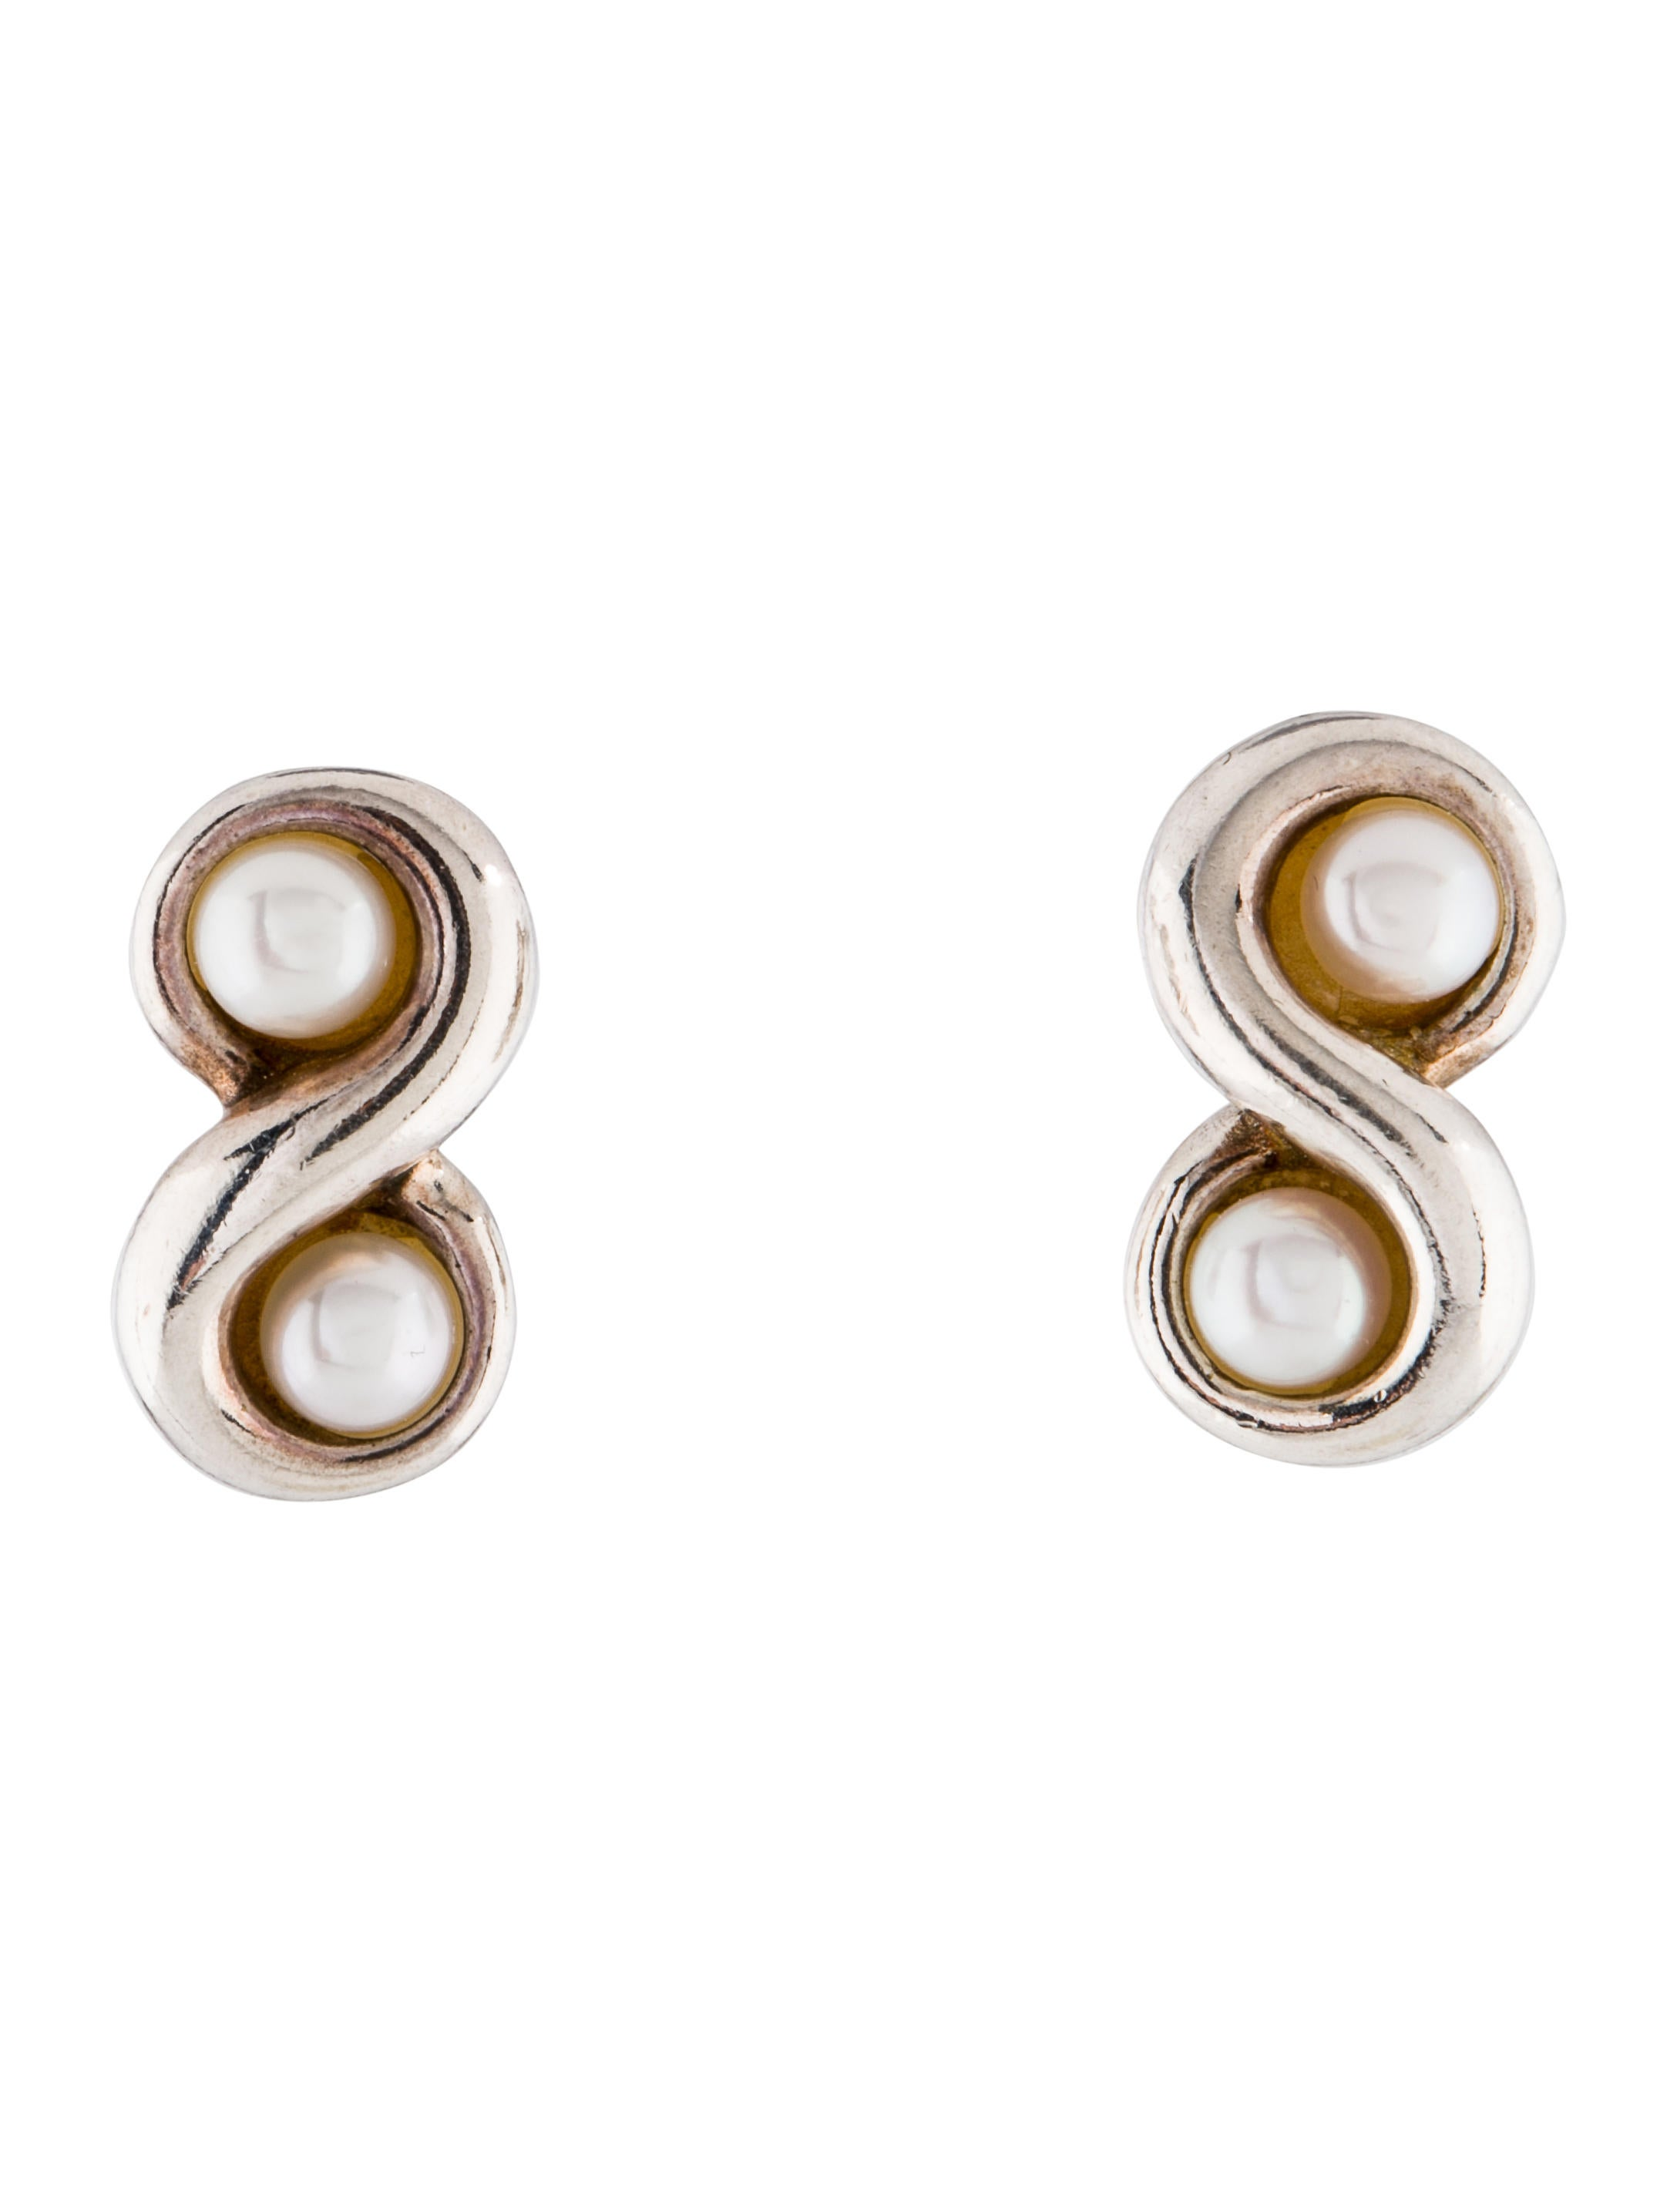 infinity earring post products earrings norbu nsc